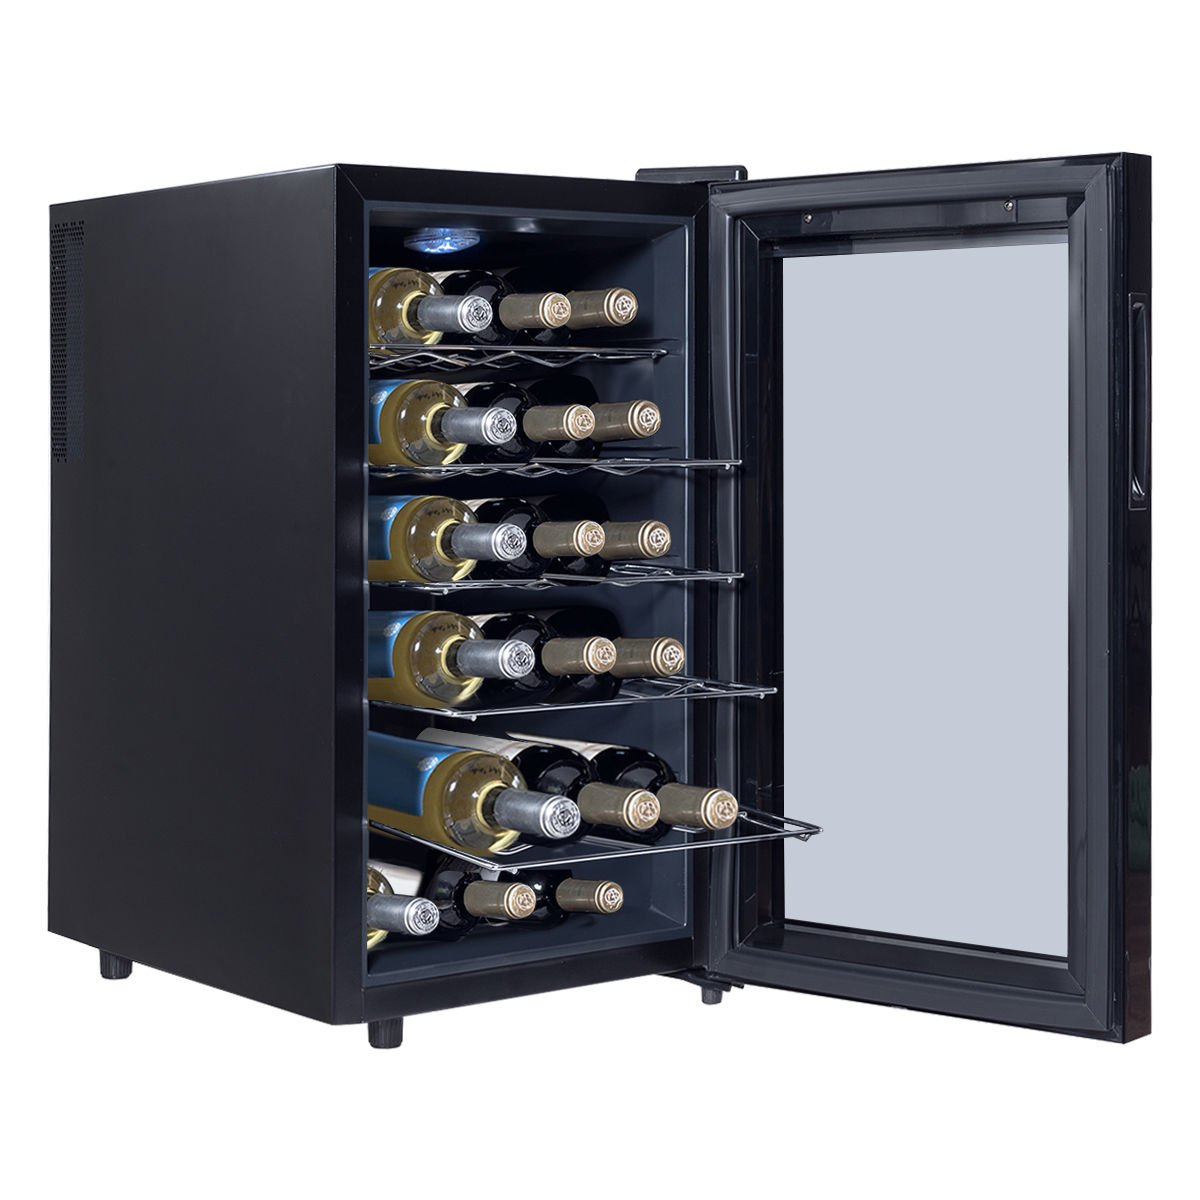 Costway Thermoelectric Wine Cooler Freestanding Cellar Chiller Refrigerator Quiet Compact w/ Touch Control (18 Bottle) by COSTWAY (Image #2)